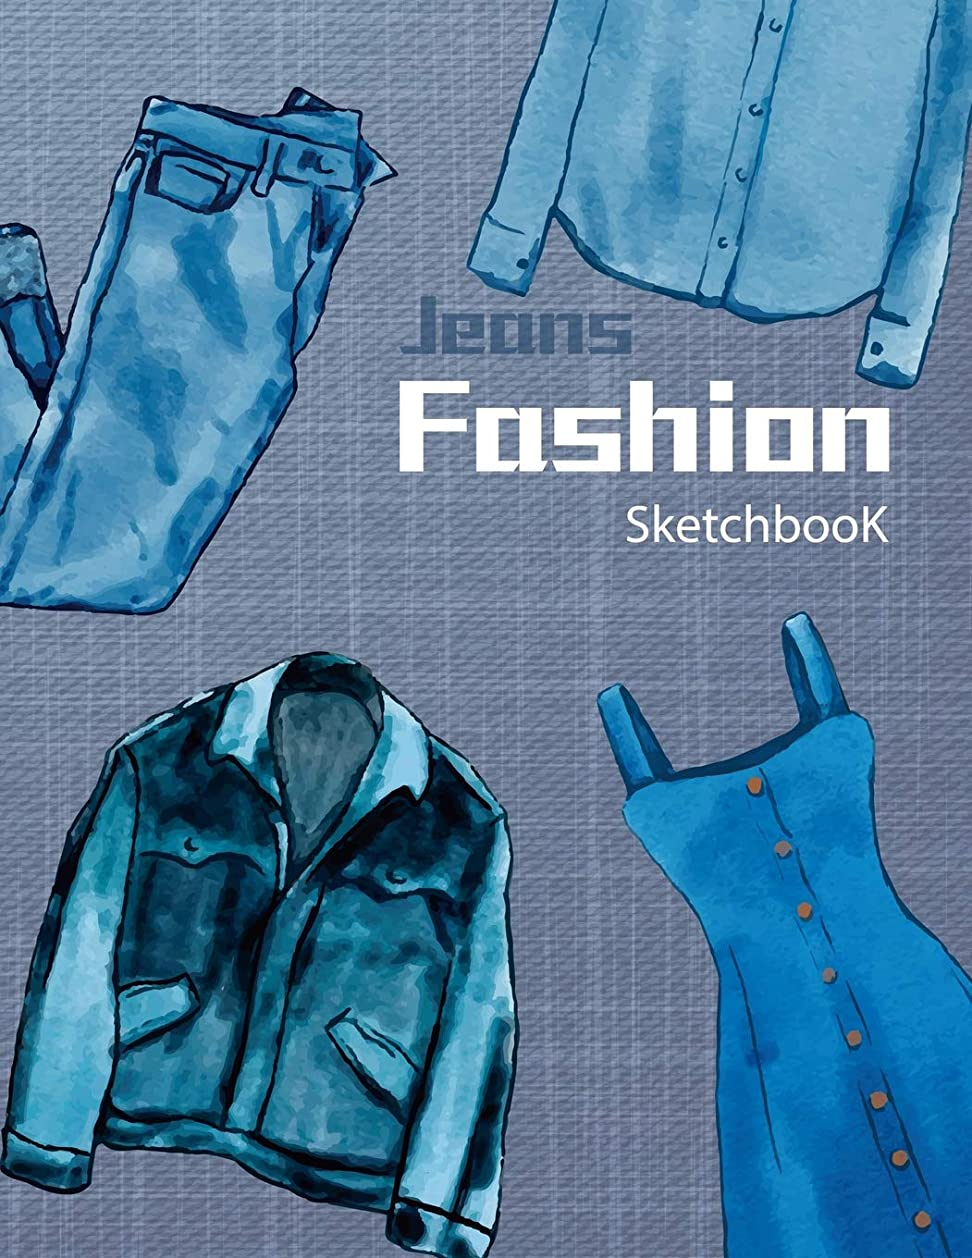 事故爆風人間Fashion Sketchbook | Jeans: 16 Figure sketch different posed template will easily create your fashion styles (Fashion Designer Sketchbook)